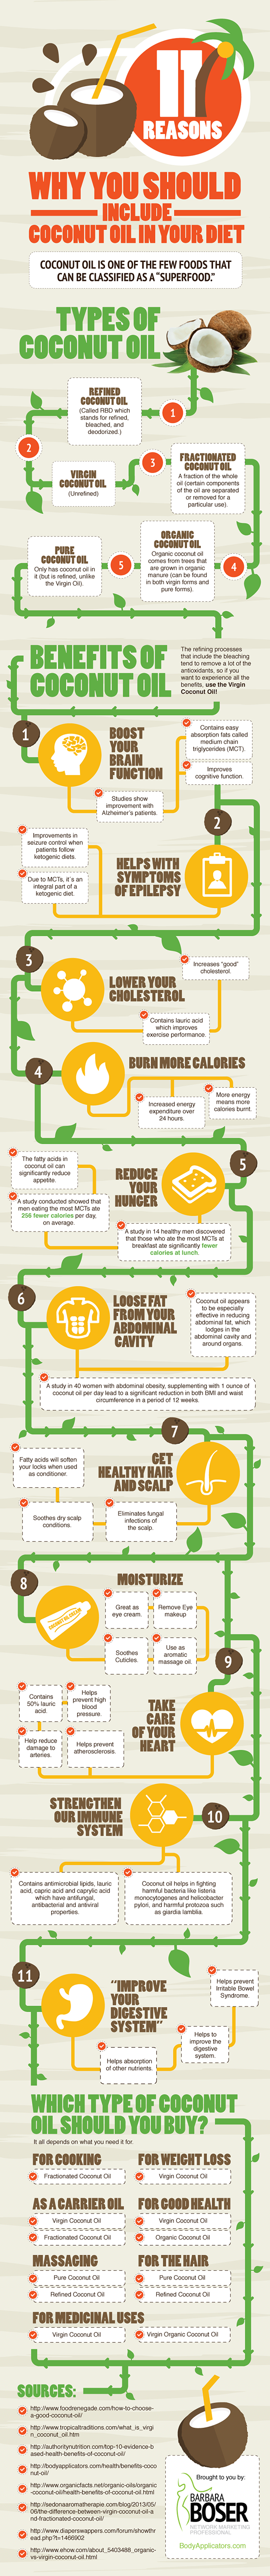 11 Reasons Why you Should Include Coconut Oil in your Diet #infographic